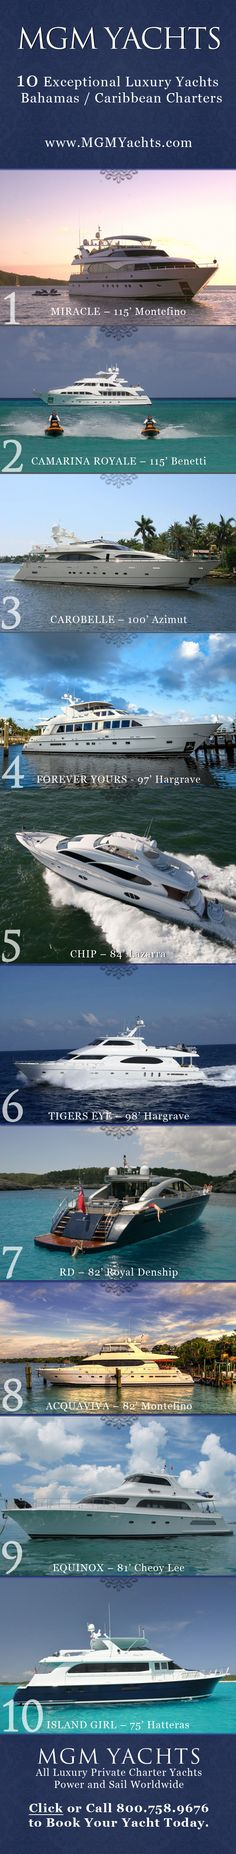 Here at MGM Yachts we put together our list 10 exceptional luxury Motor Yachts…